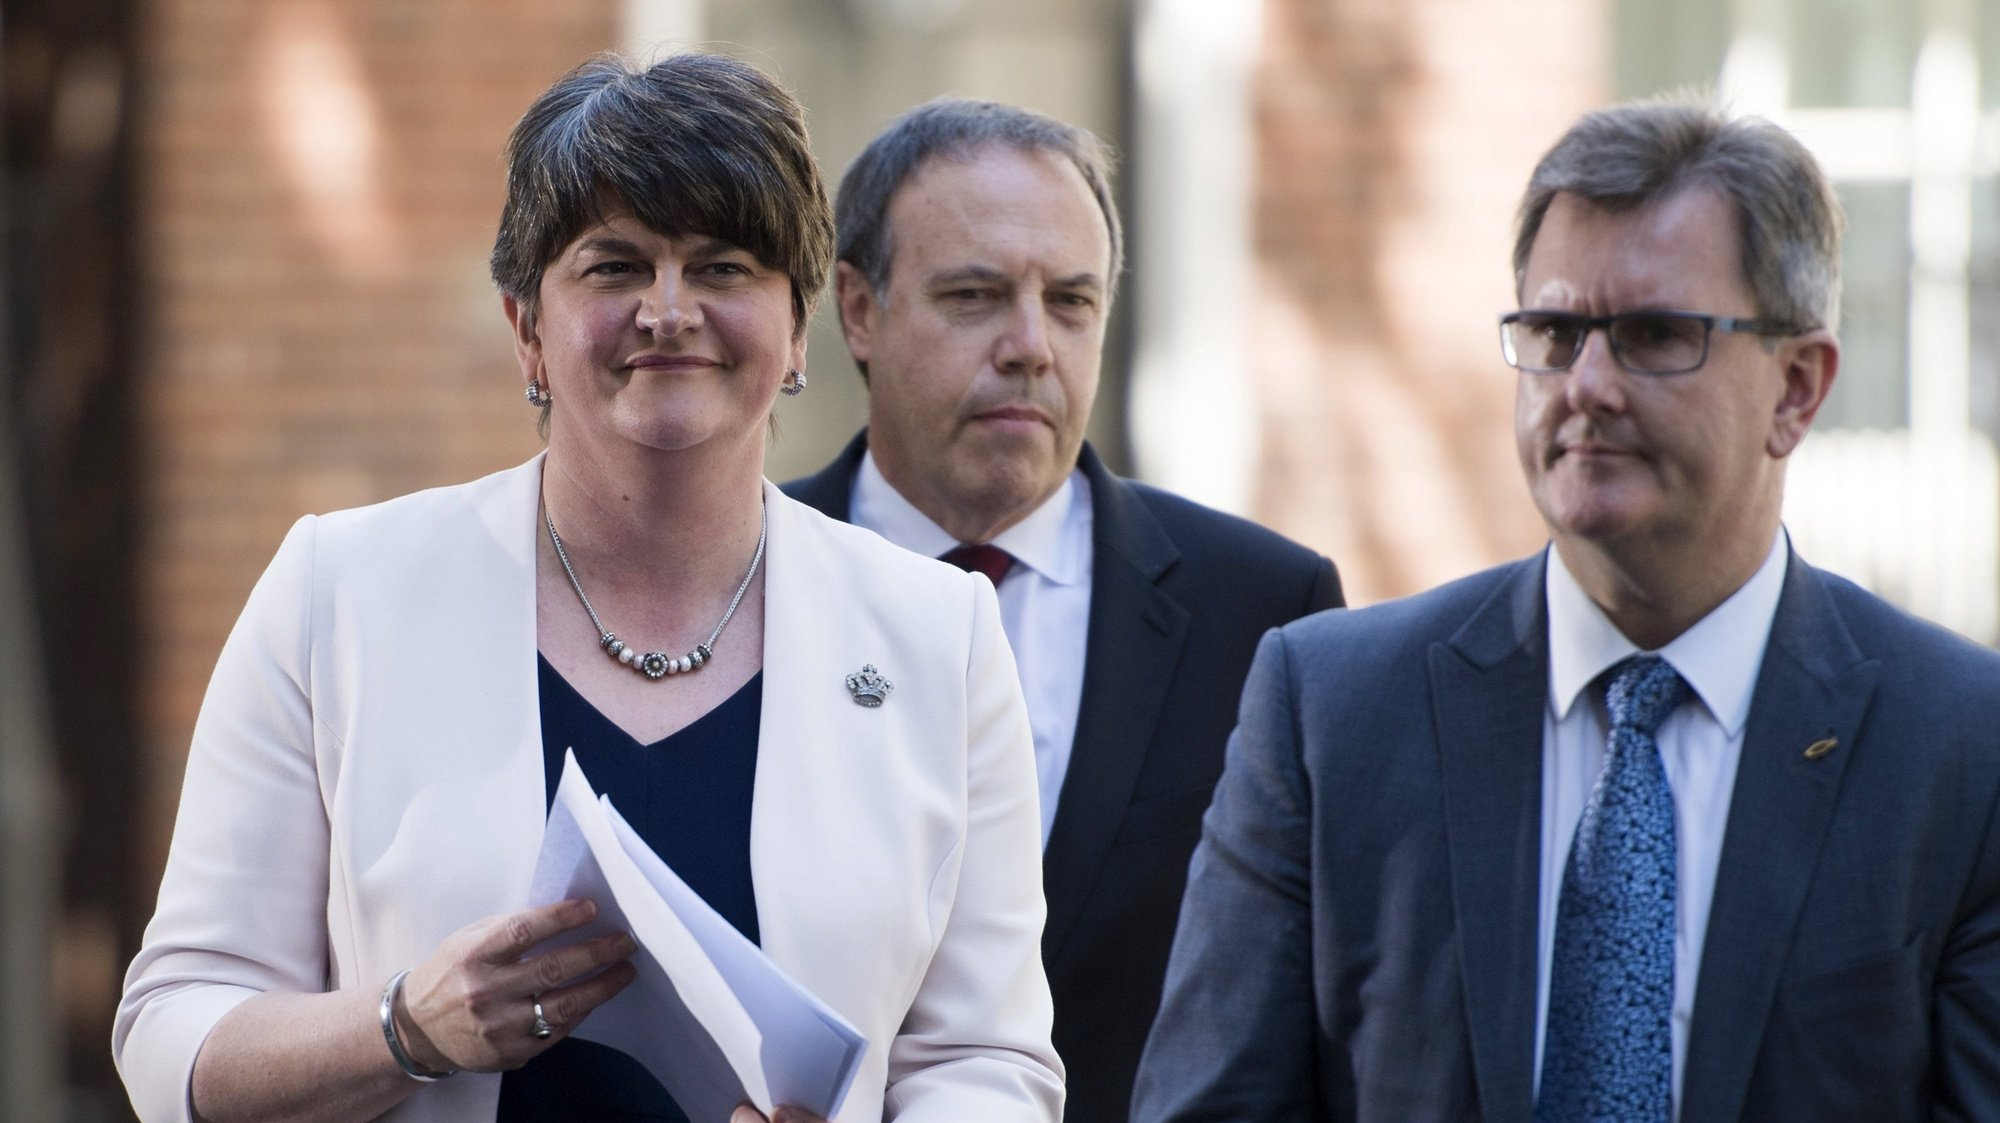 epa06051164 Leader of the Northern Ireland Democratic Unionist Party (DUP) Arlene Foster (L) Deputy Leader Nigel Dodds (C) and Chief Whip Jeffrey Donaldson (R) prepare to address members of the media outside 10 Downing Street, central London, Britain 26 June 2017. It has been announced that the DUP and Conservative party lead by Prime Minister Theresa May have agreed terms for an agreement to form a government.  EPA/WILL OLIVER